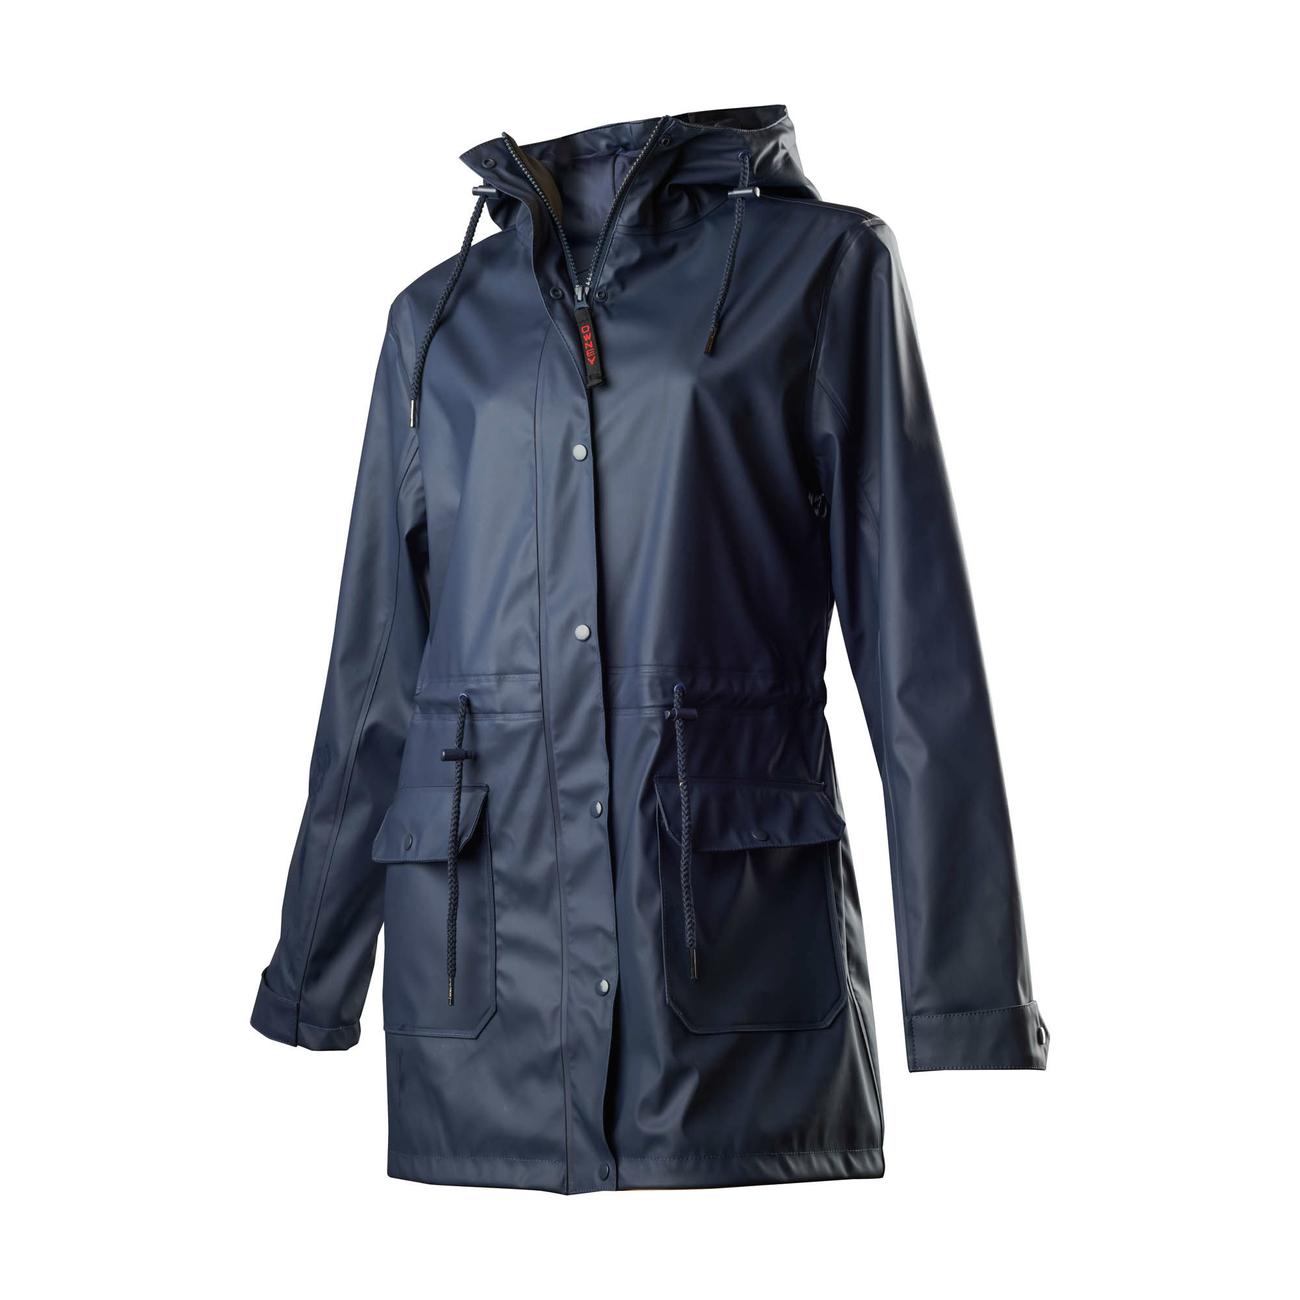 OWNEY Damen-Regenjacke Vela, XS, blau